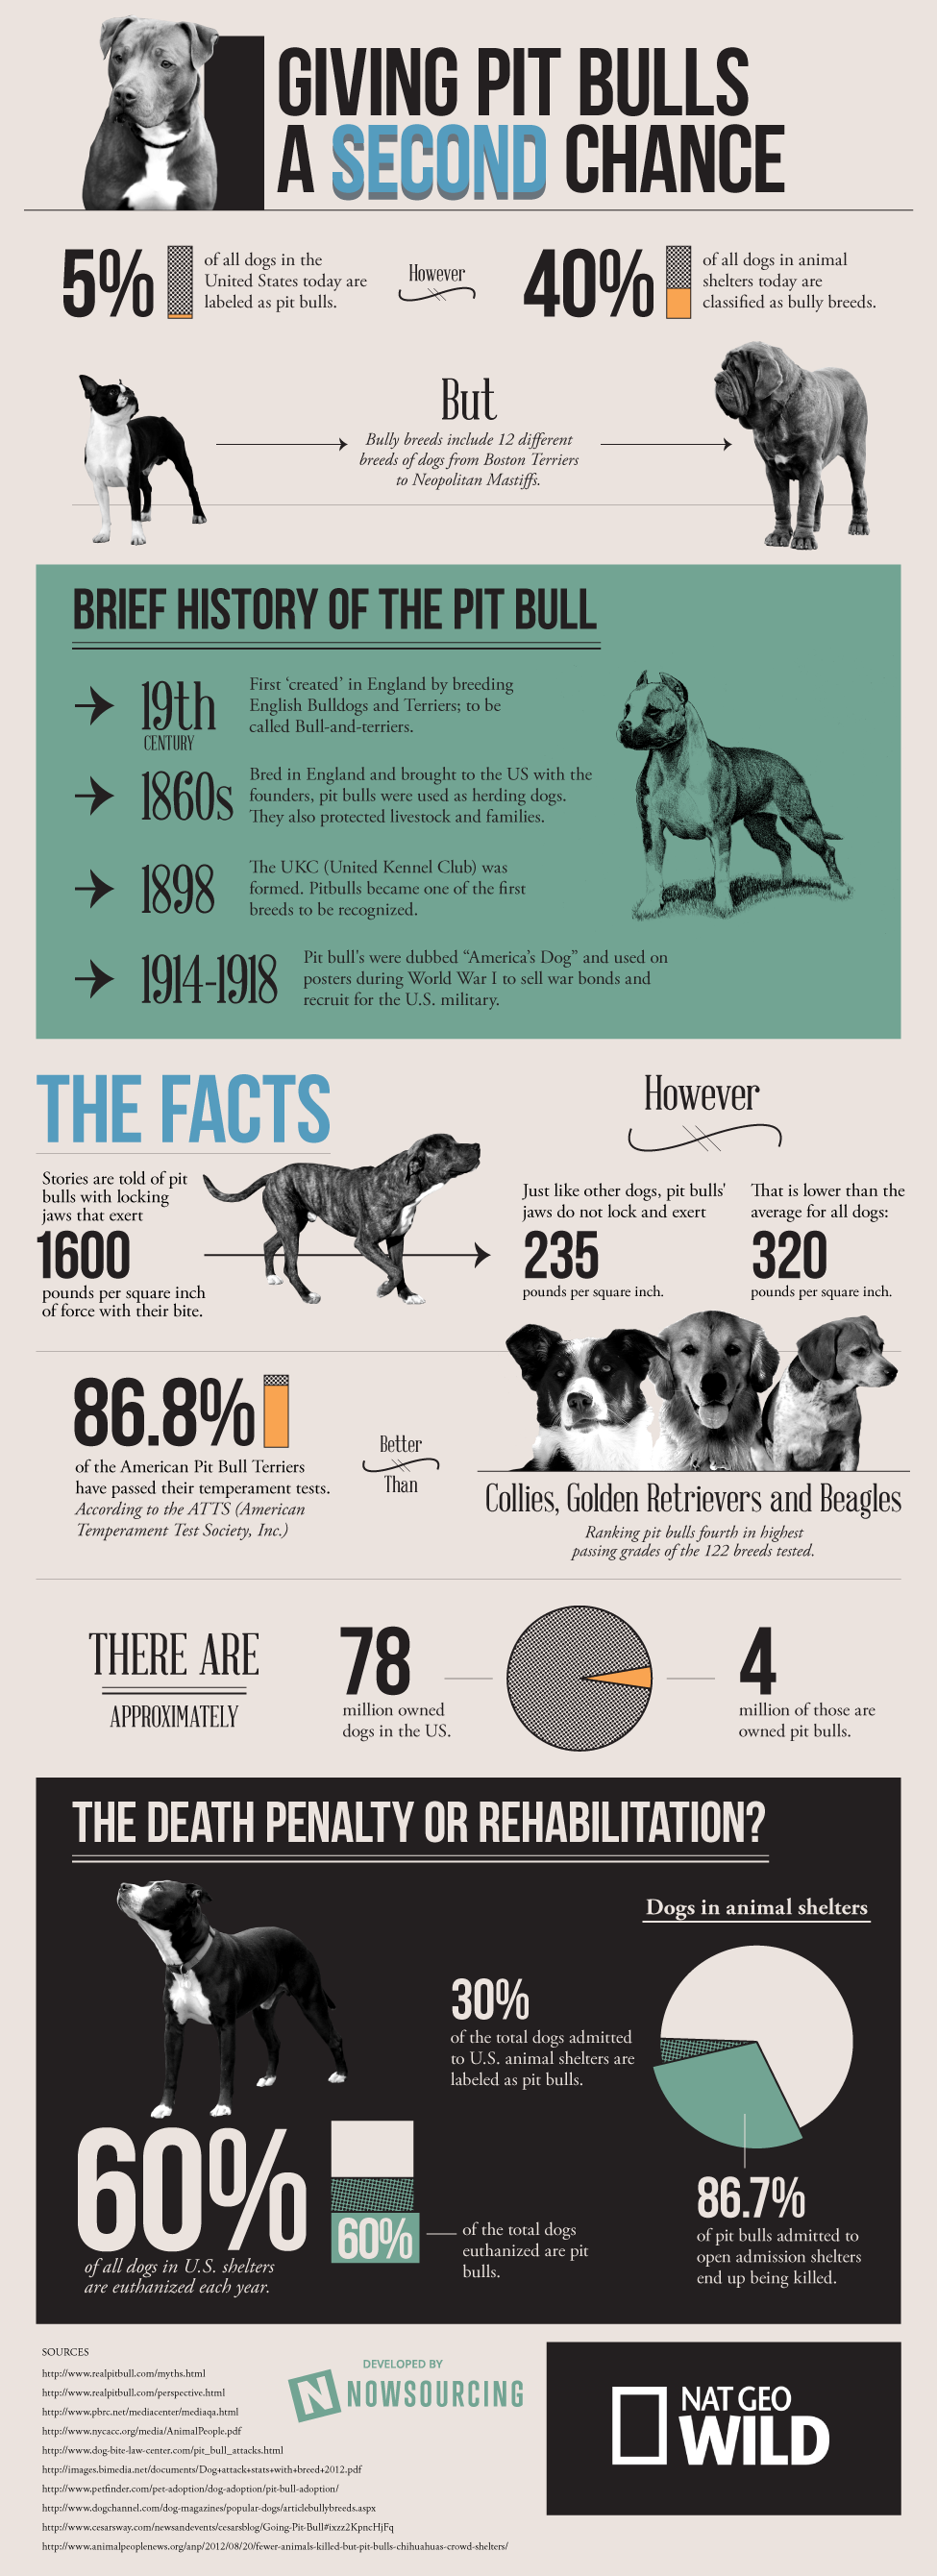 Giving Pit Bulls a Second Chance [Infographic] | Business 2 Community